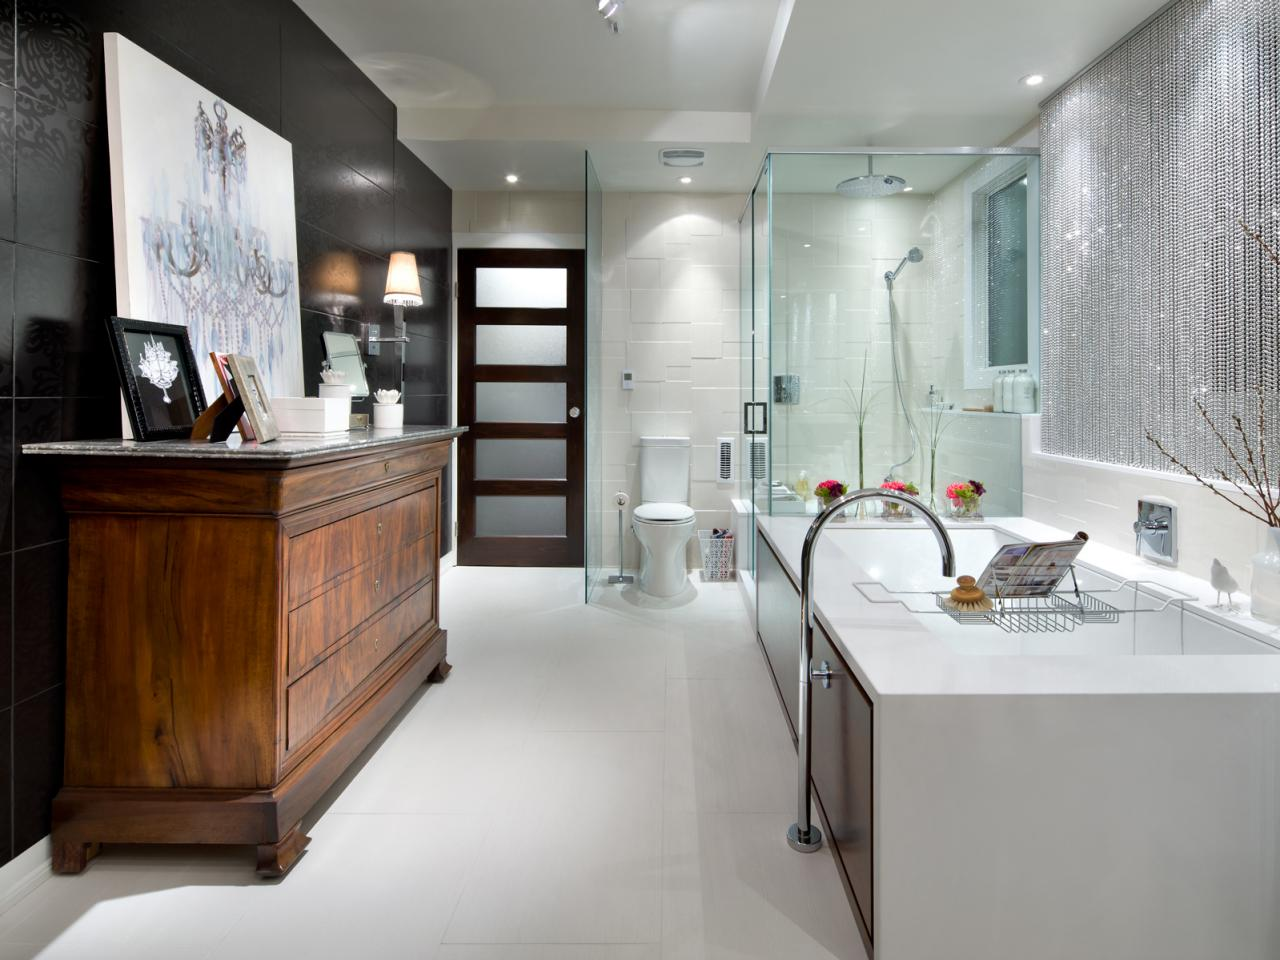 Candice Bathroom Remodeling Ideas (Image 2 of 10)